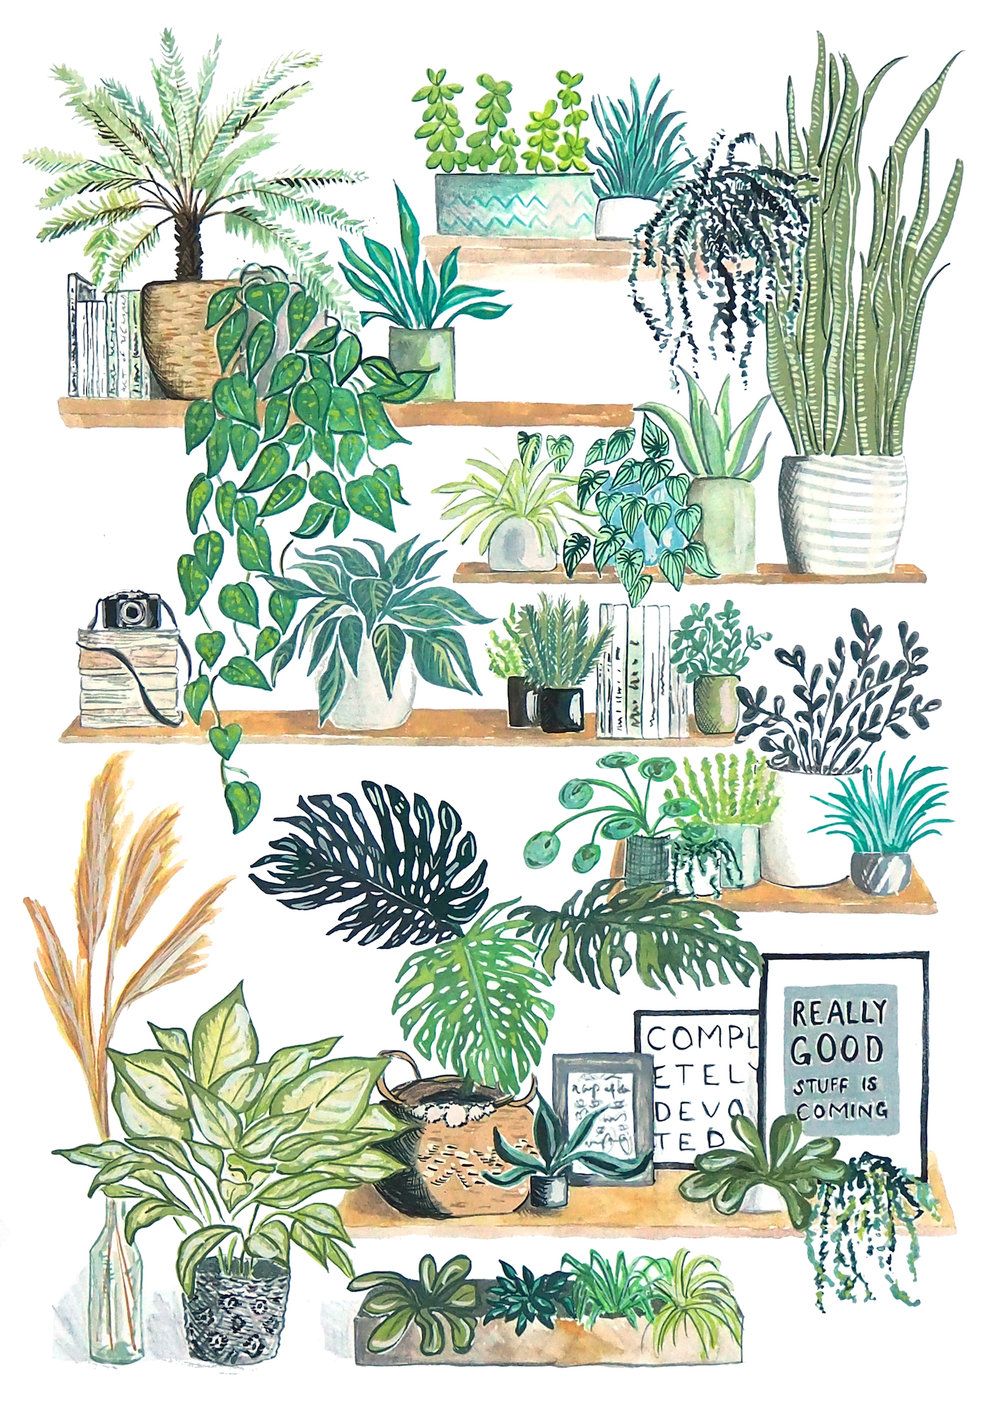 Houseplant shelves 2000.jpg